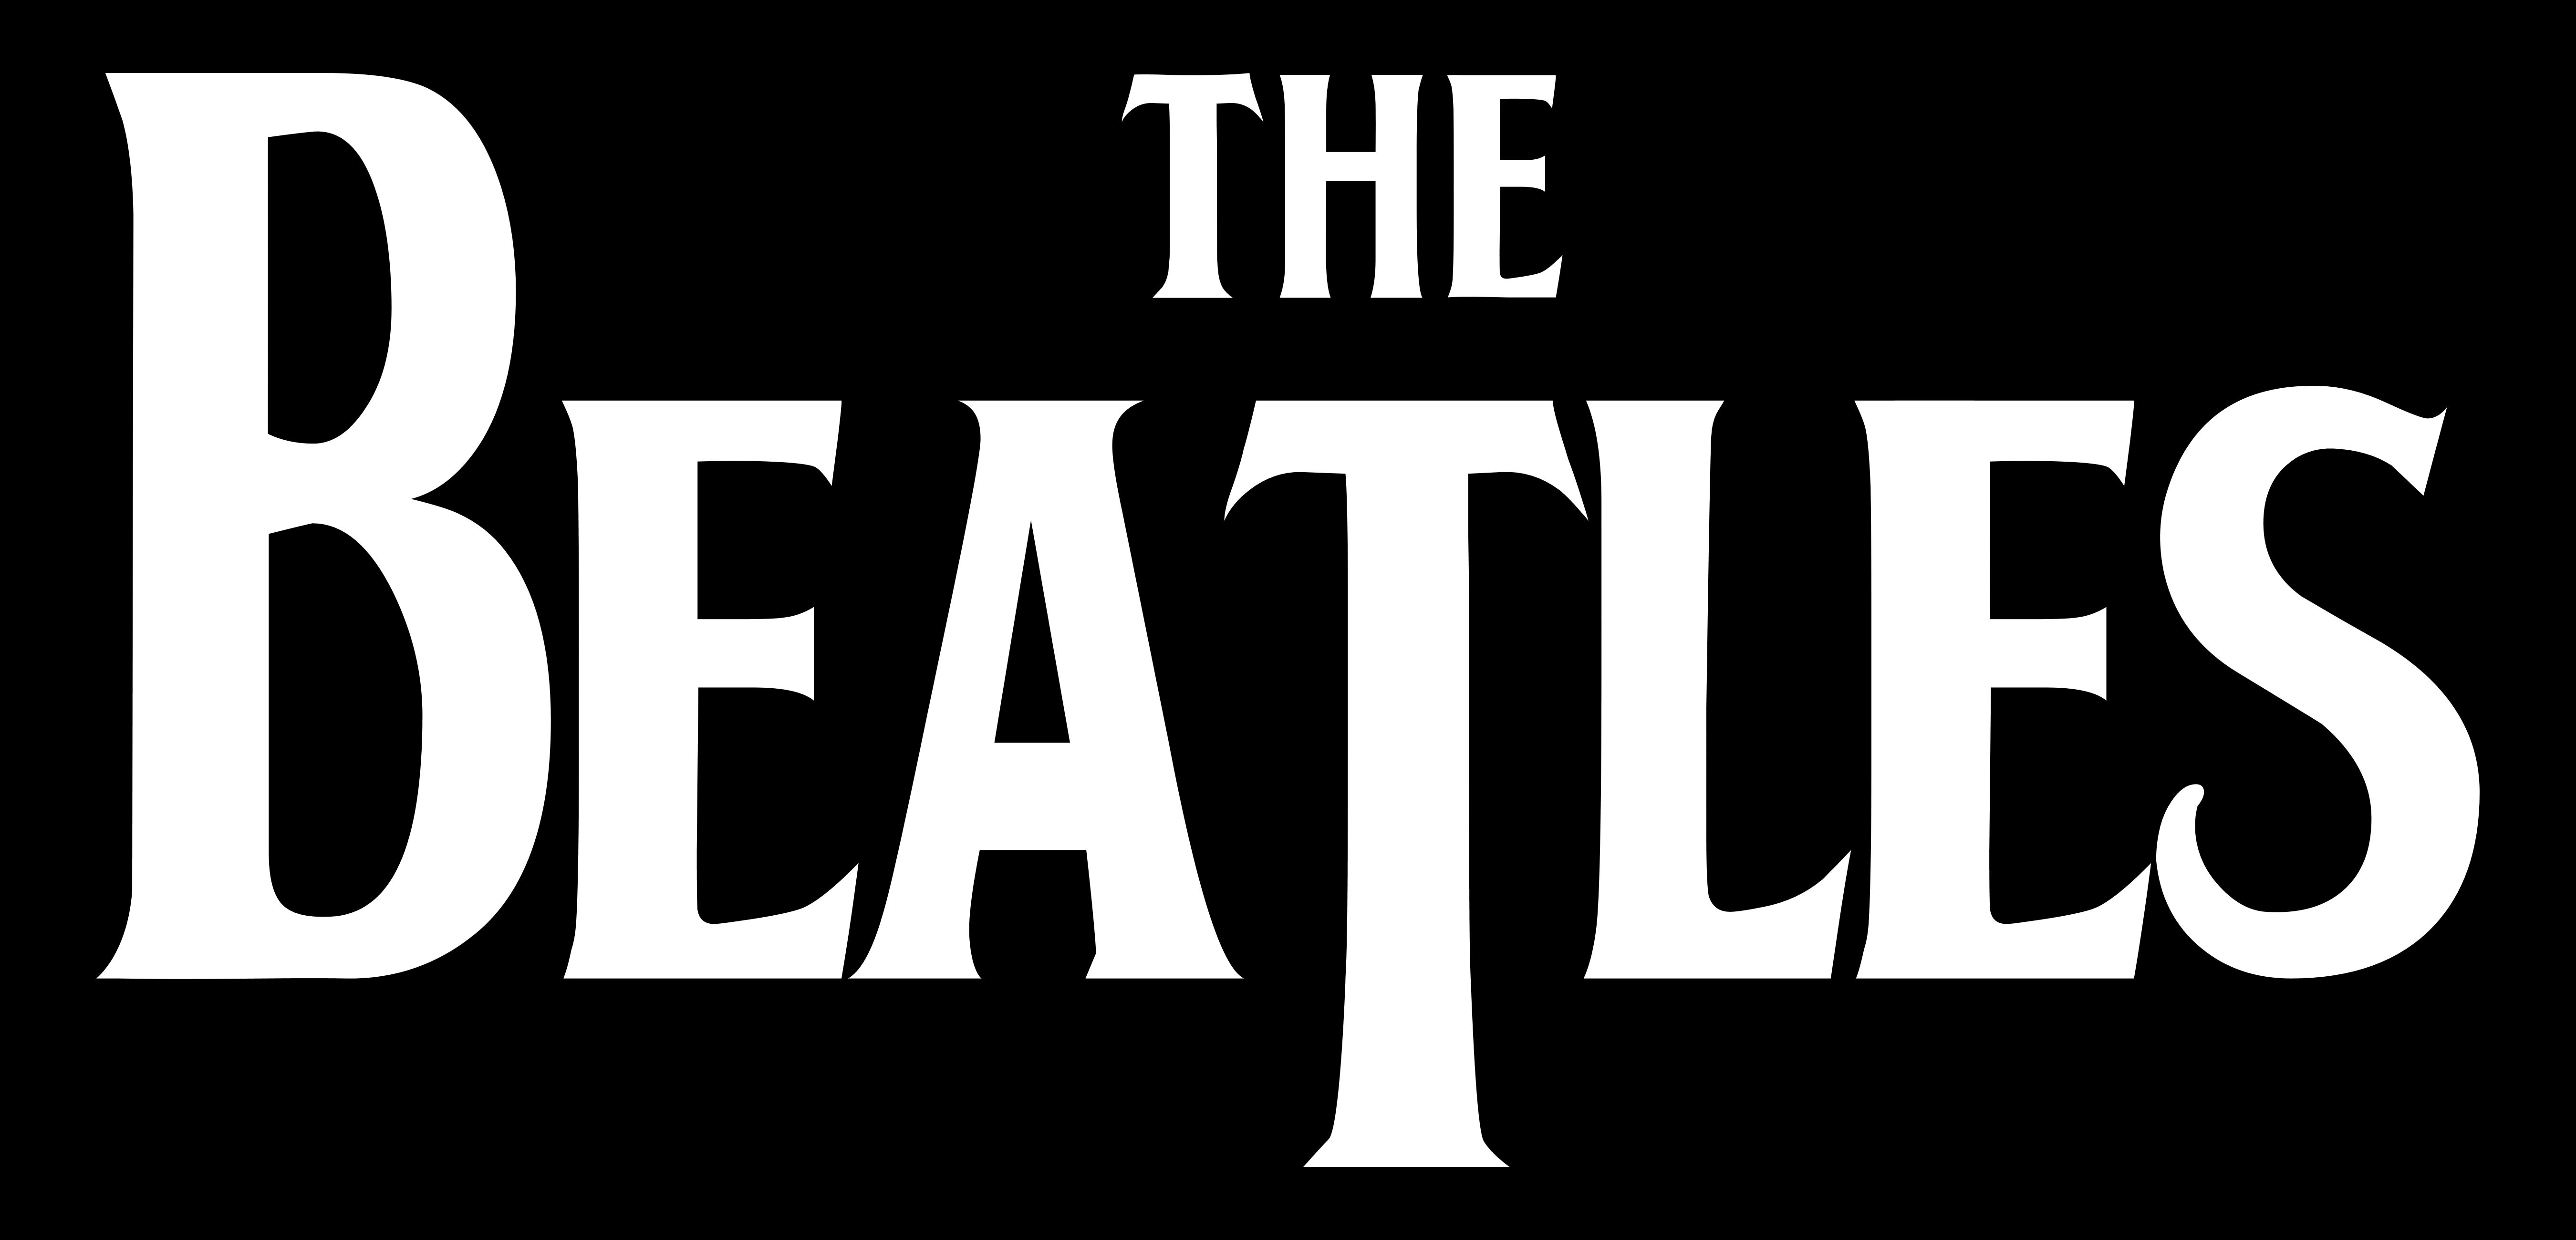 The Beatles Logo - Beatles Logo, Beatles Symbol, Meaning, History and Evolution